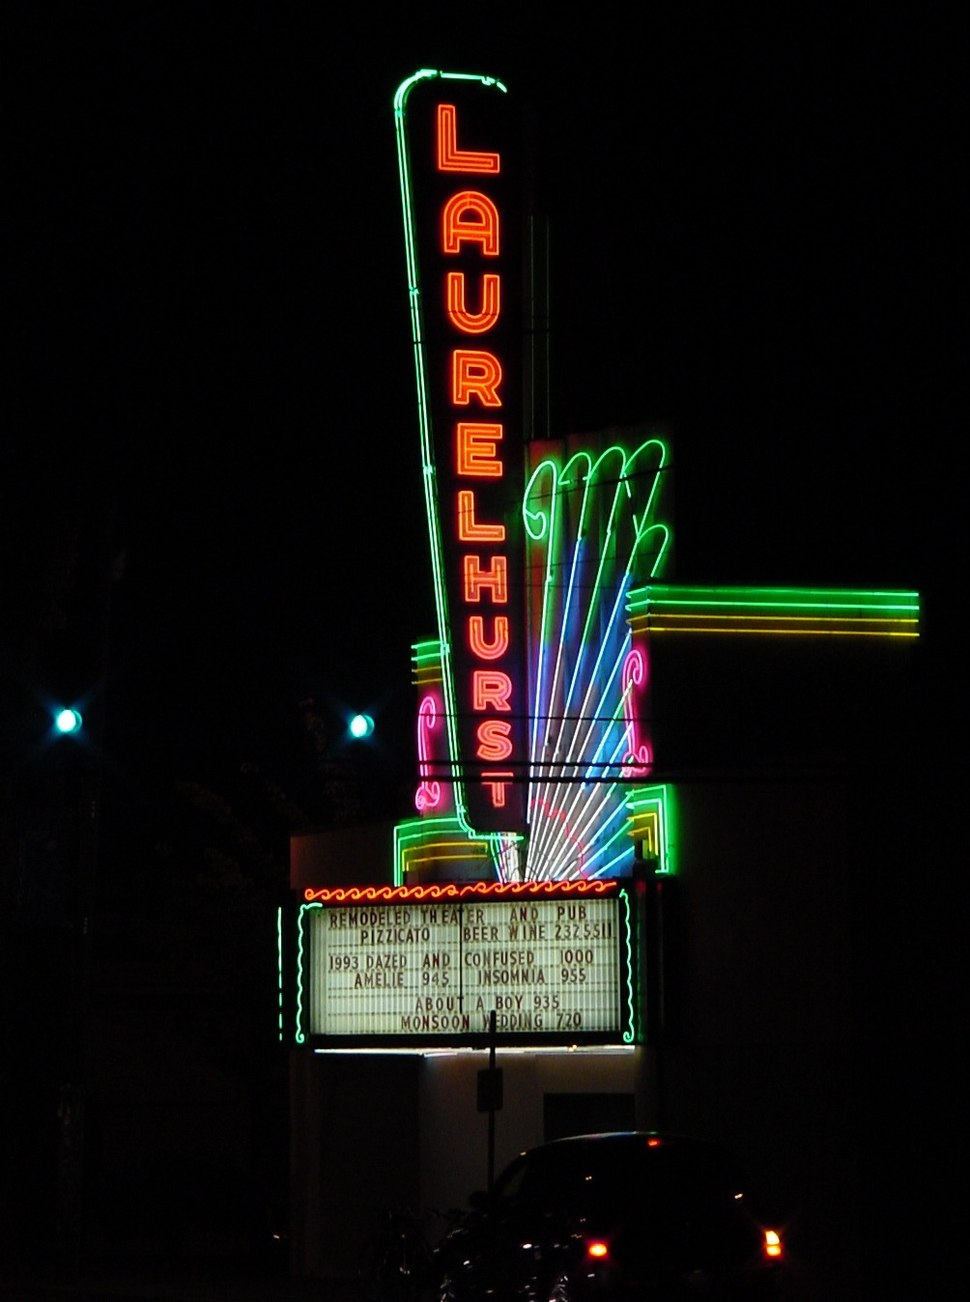 Laurelhurst Theater neon sign - side view at night